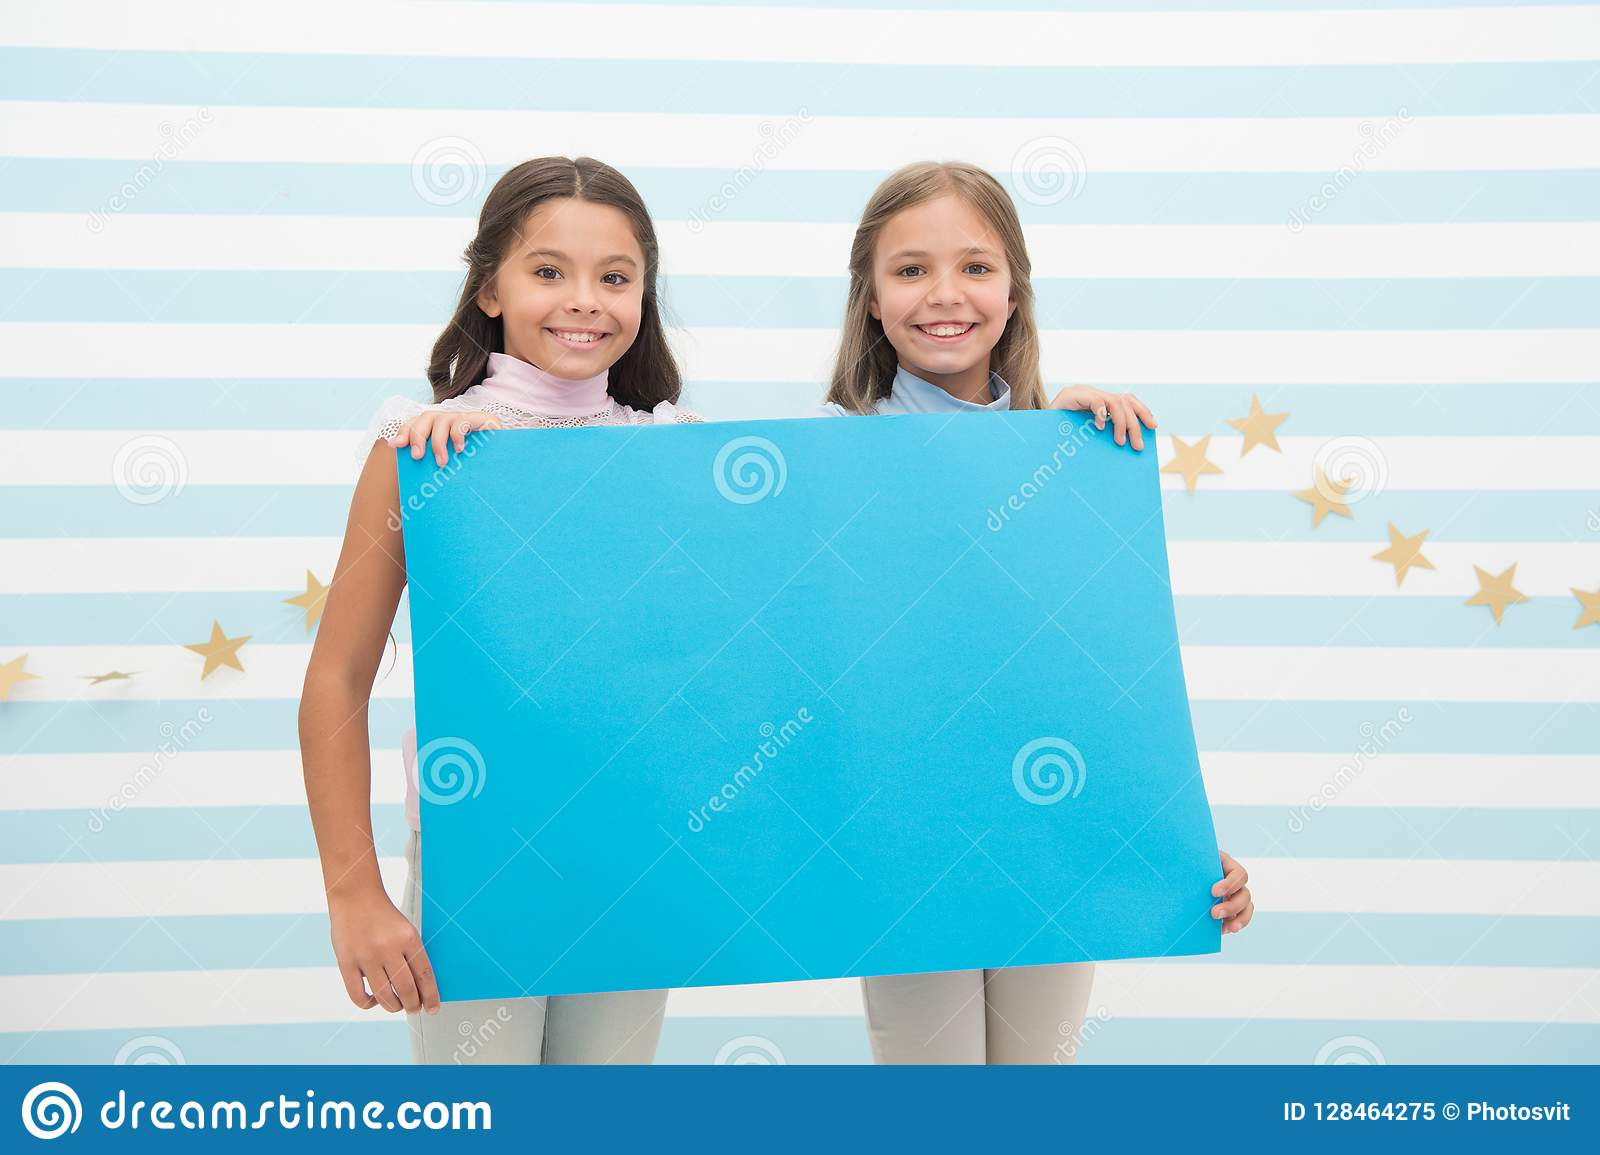 The Surprising News About Childrens >> Kids Announcement Concept Amazing Surprising News Girl Hold